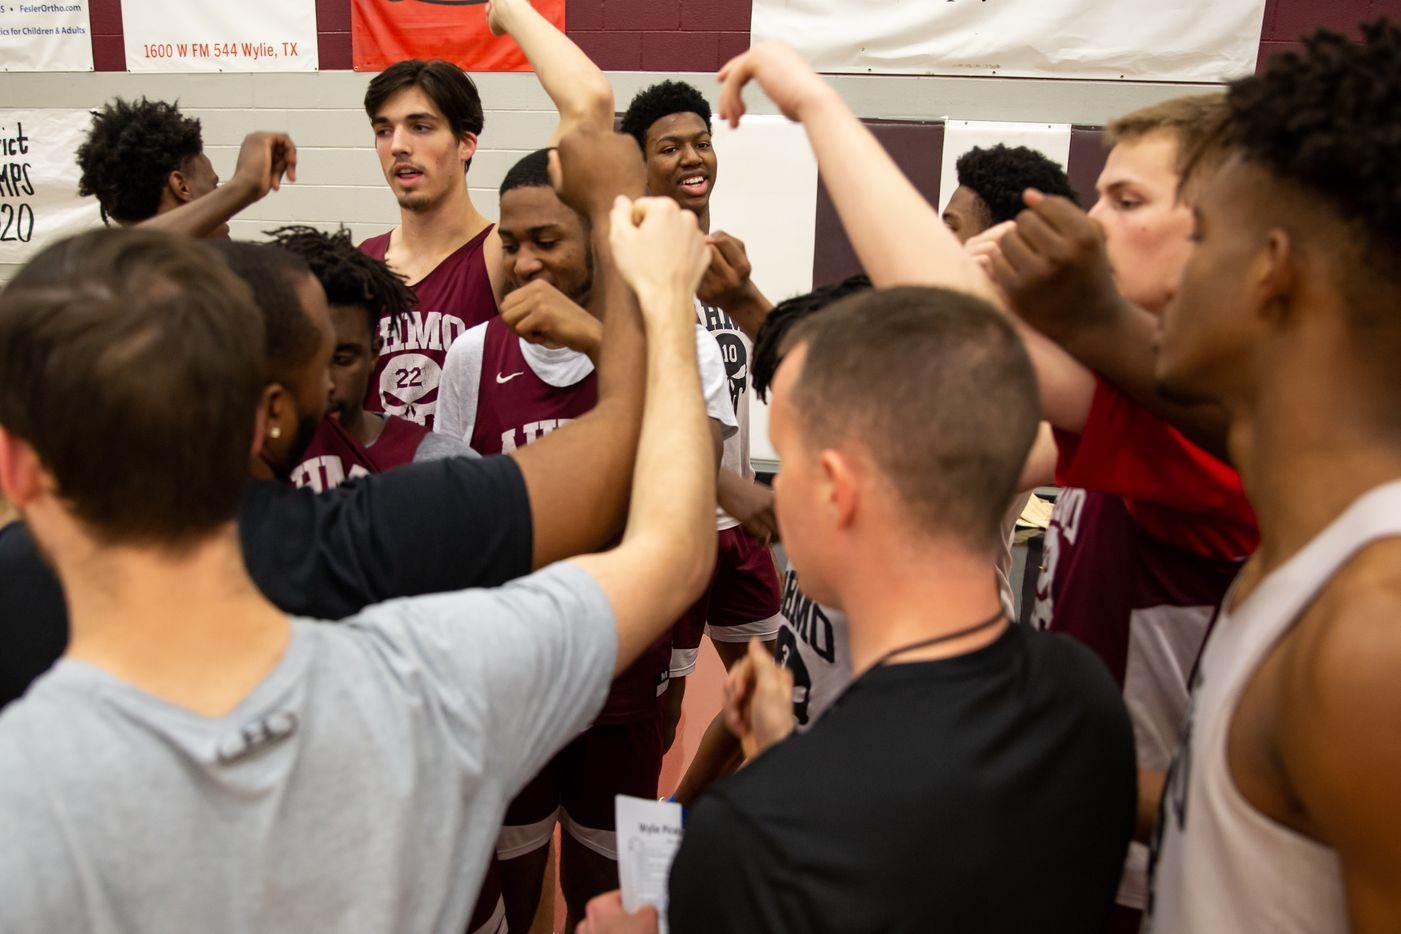 Wylie High School's mens basketball team break out a huddle during practice at Wylie High School on March 11, 2020 in Wylie, Texas. (Kara Dry/Special Contributor)